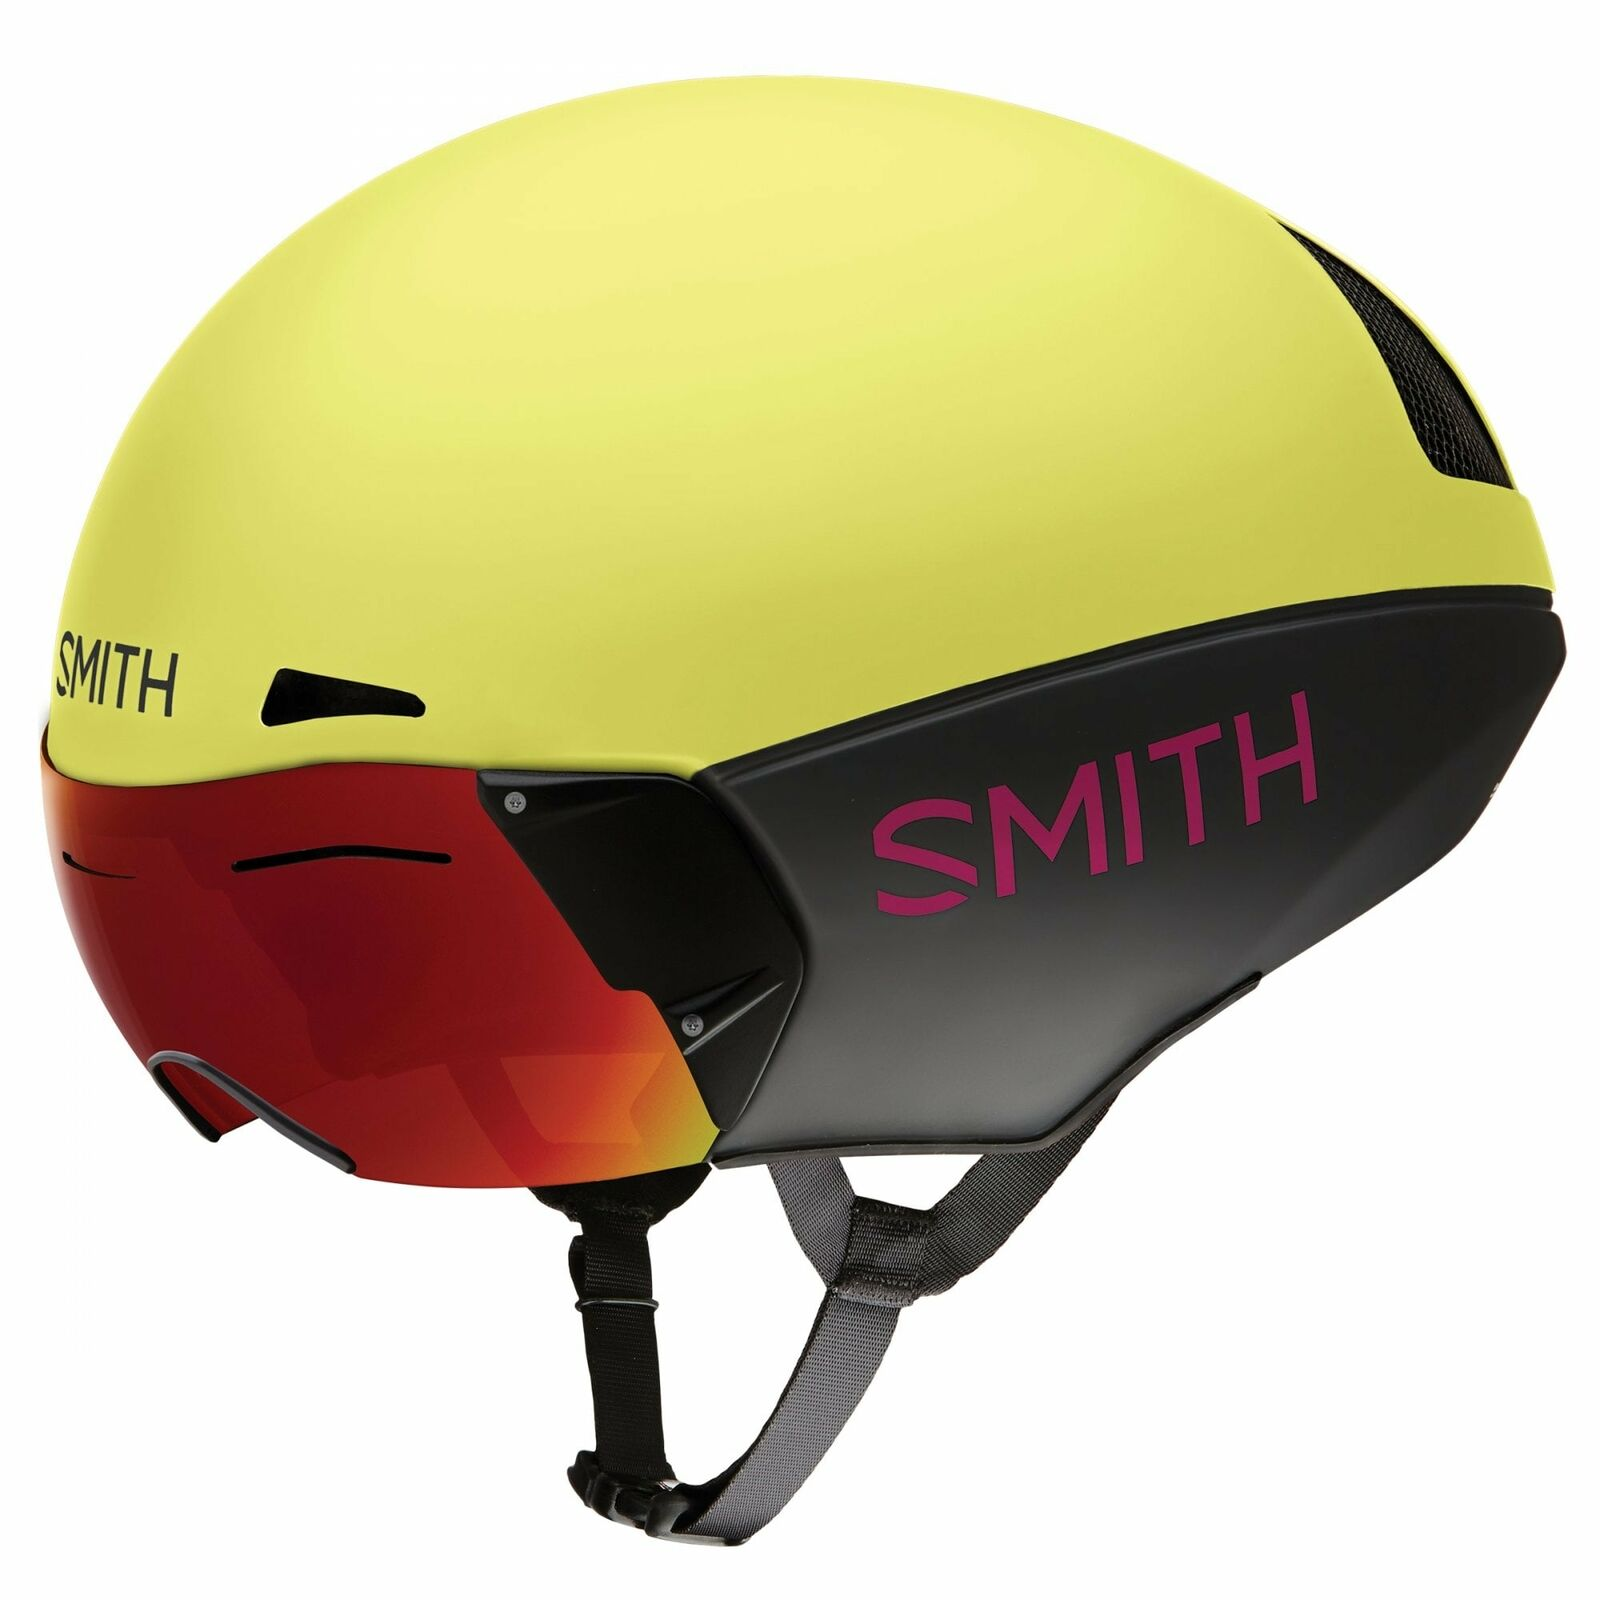 Smith Podium TT MIPS MIPS MIPS Casco 2019 062f41